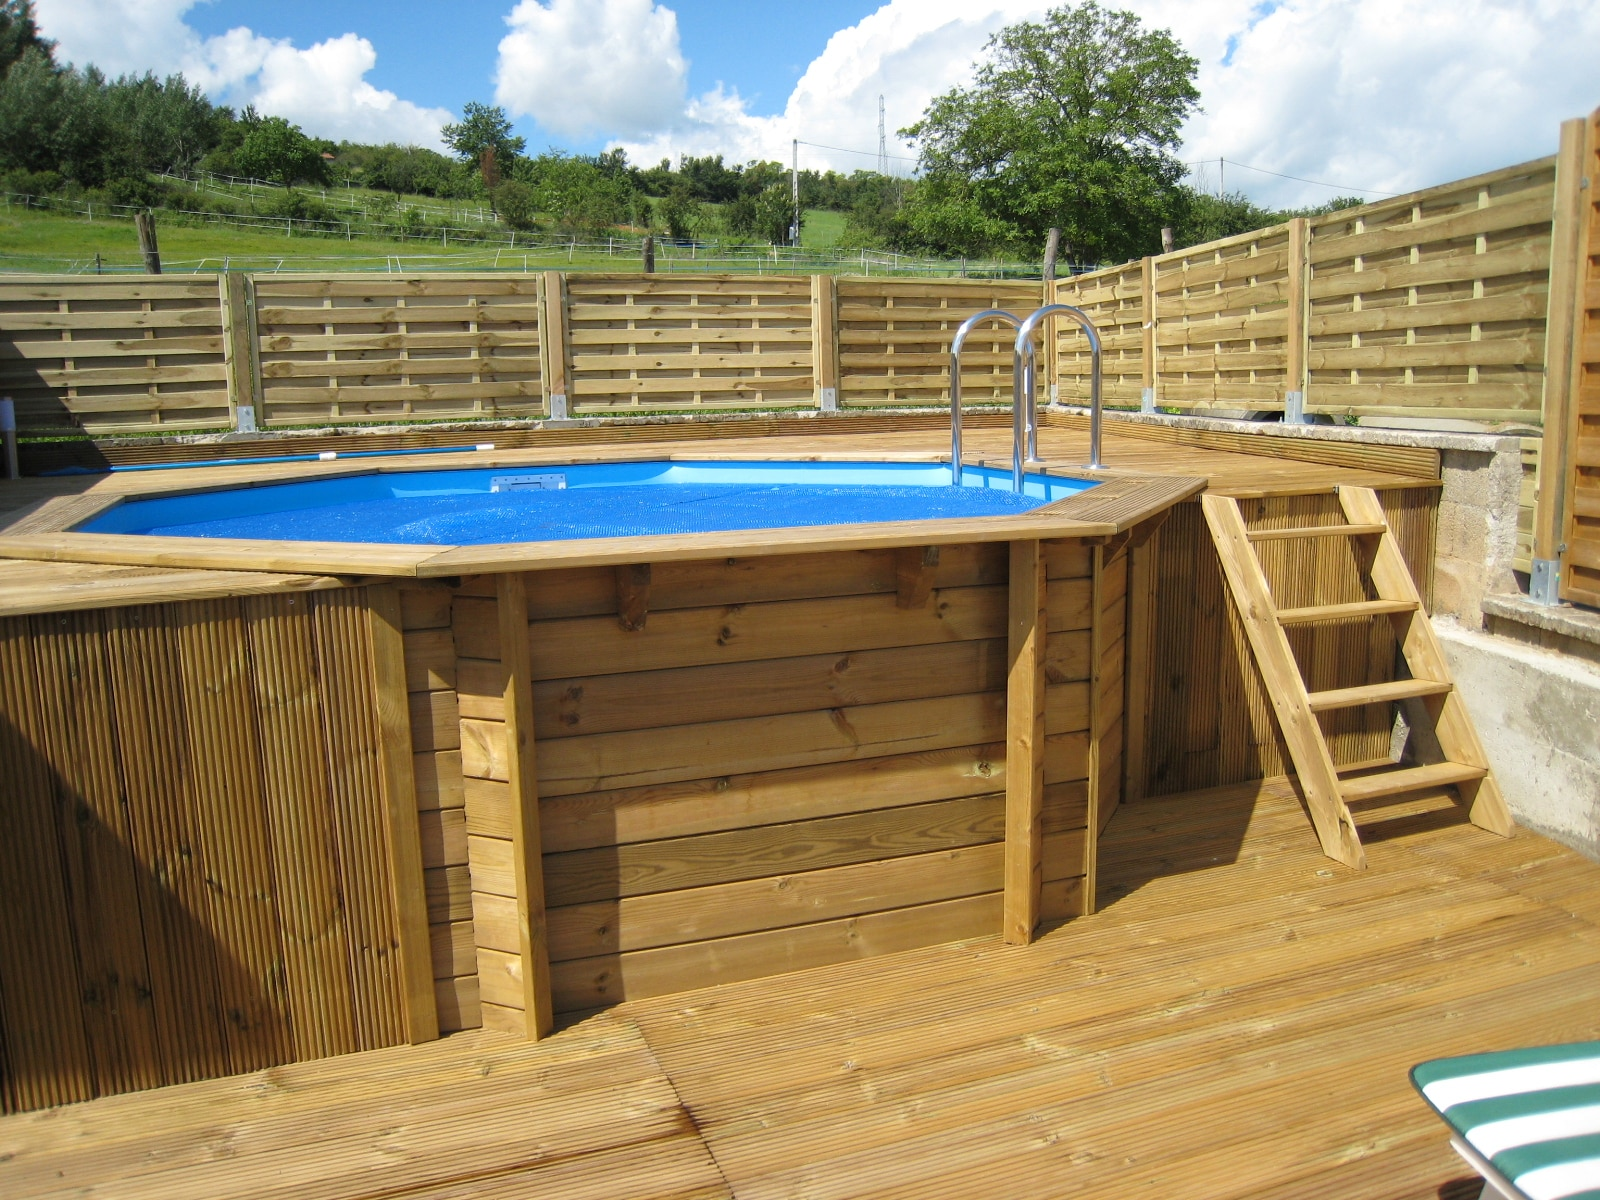 Comment monter une piscine en bois for Montage piscine bois